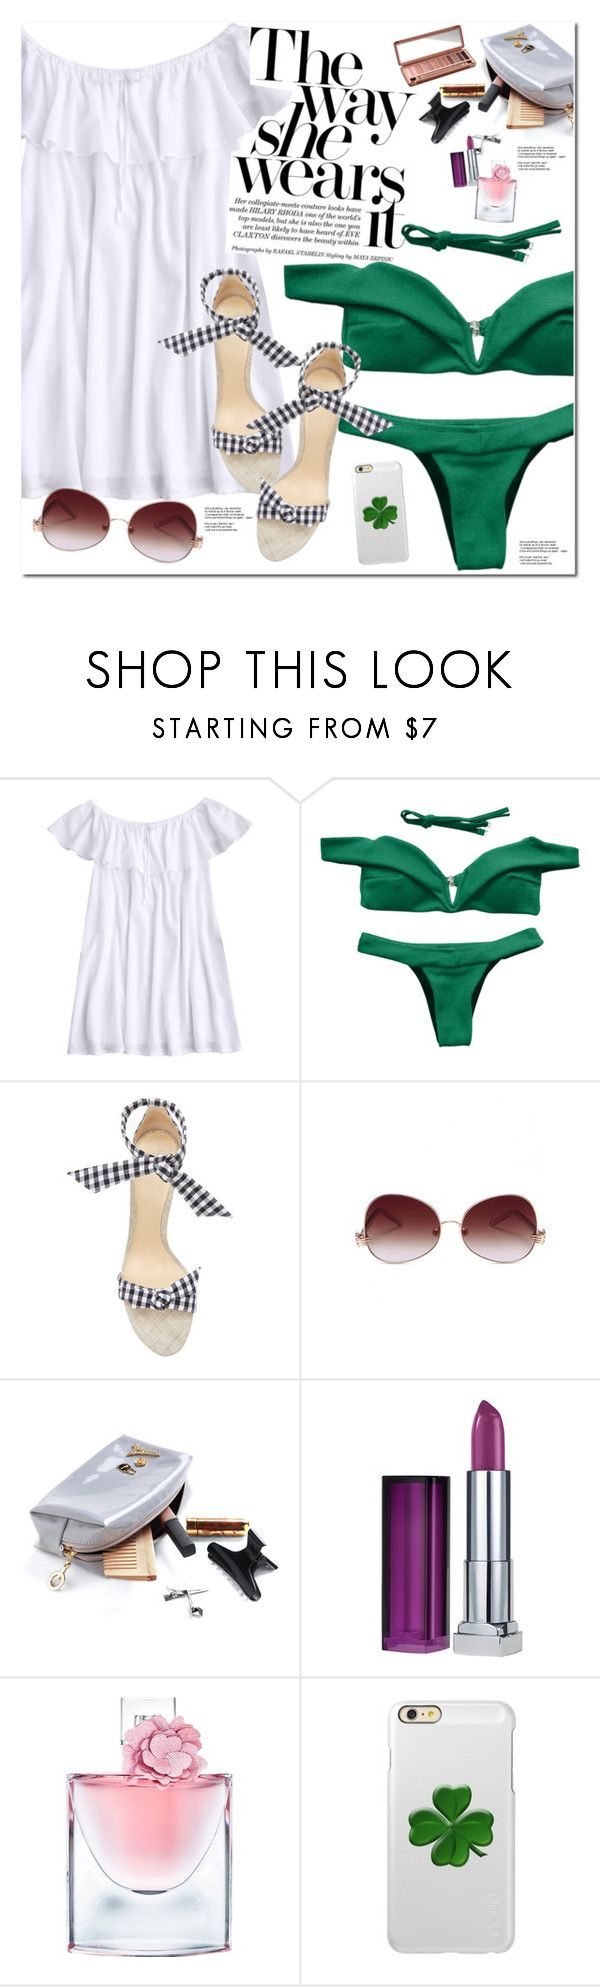 """The Way She Wears It"" by oshint ❤ liked on Polyvore featuring Alexandre Birman, Maybelline, Lancôme, Incipio and Urban Decay"